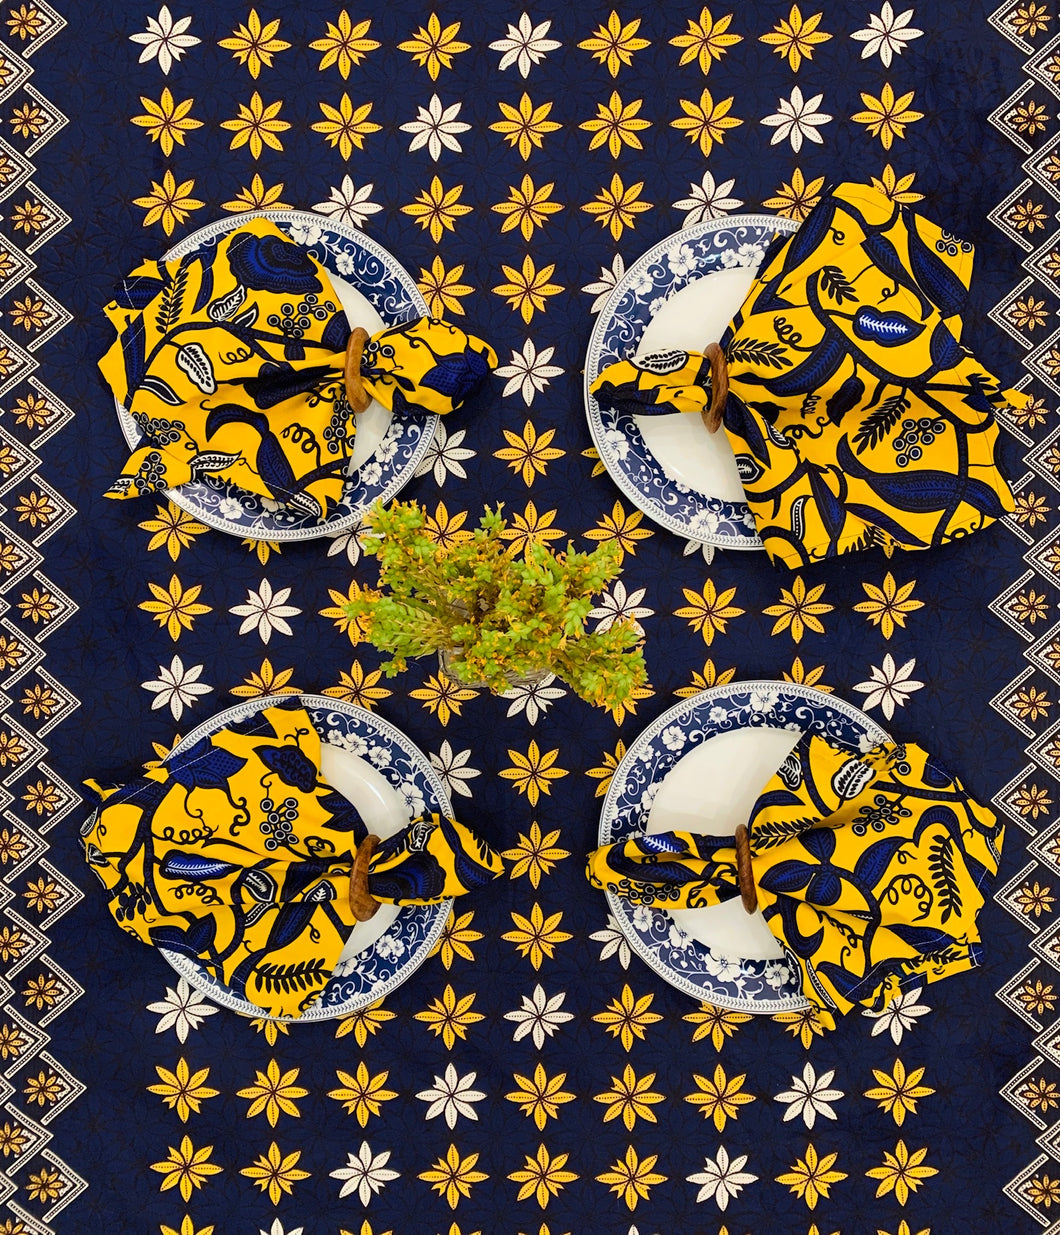 Starry, Starry Bite 🌟 & Jello Napkins - Superstar Set